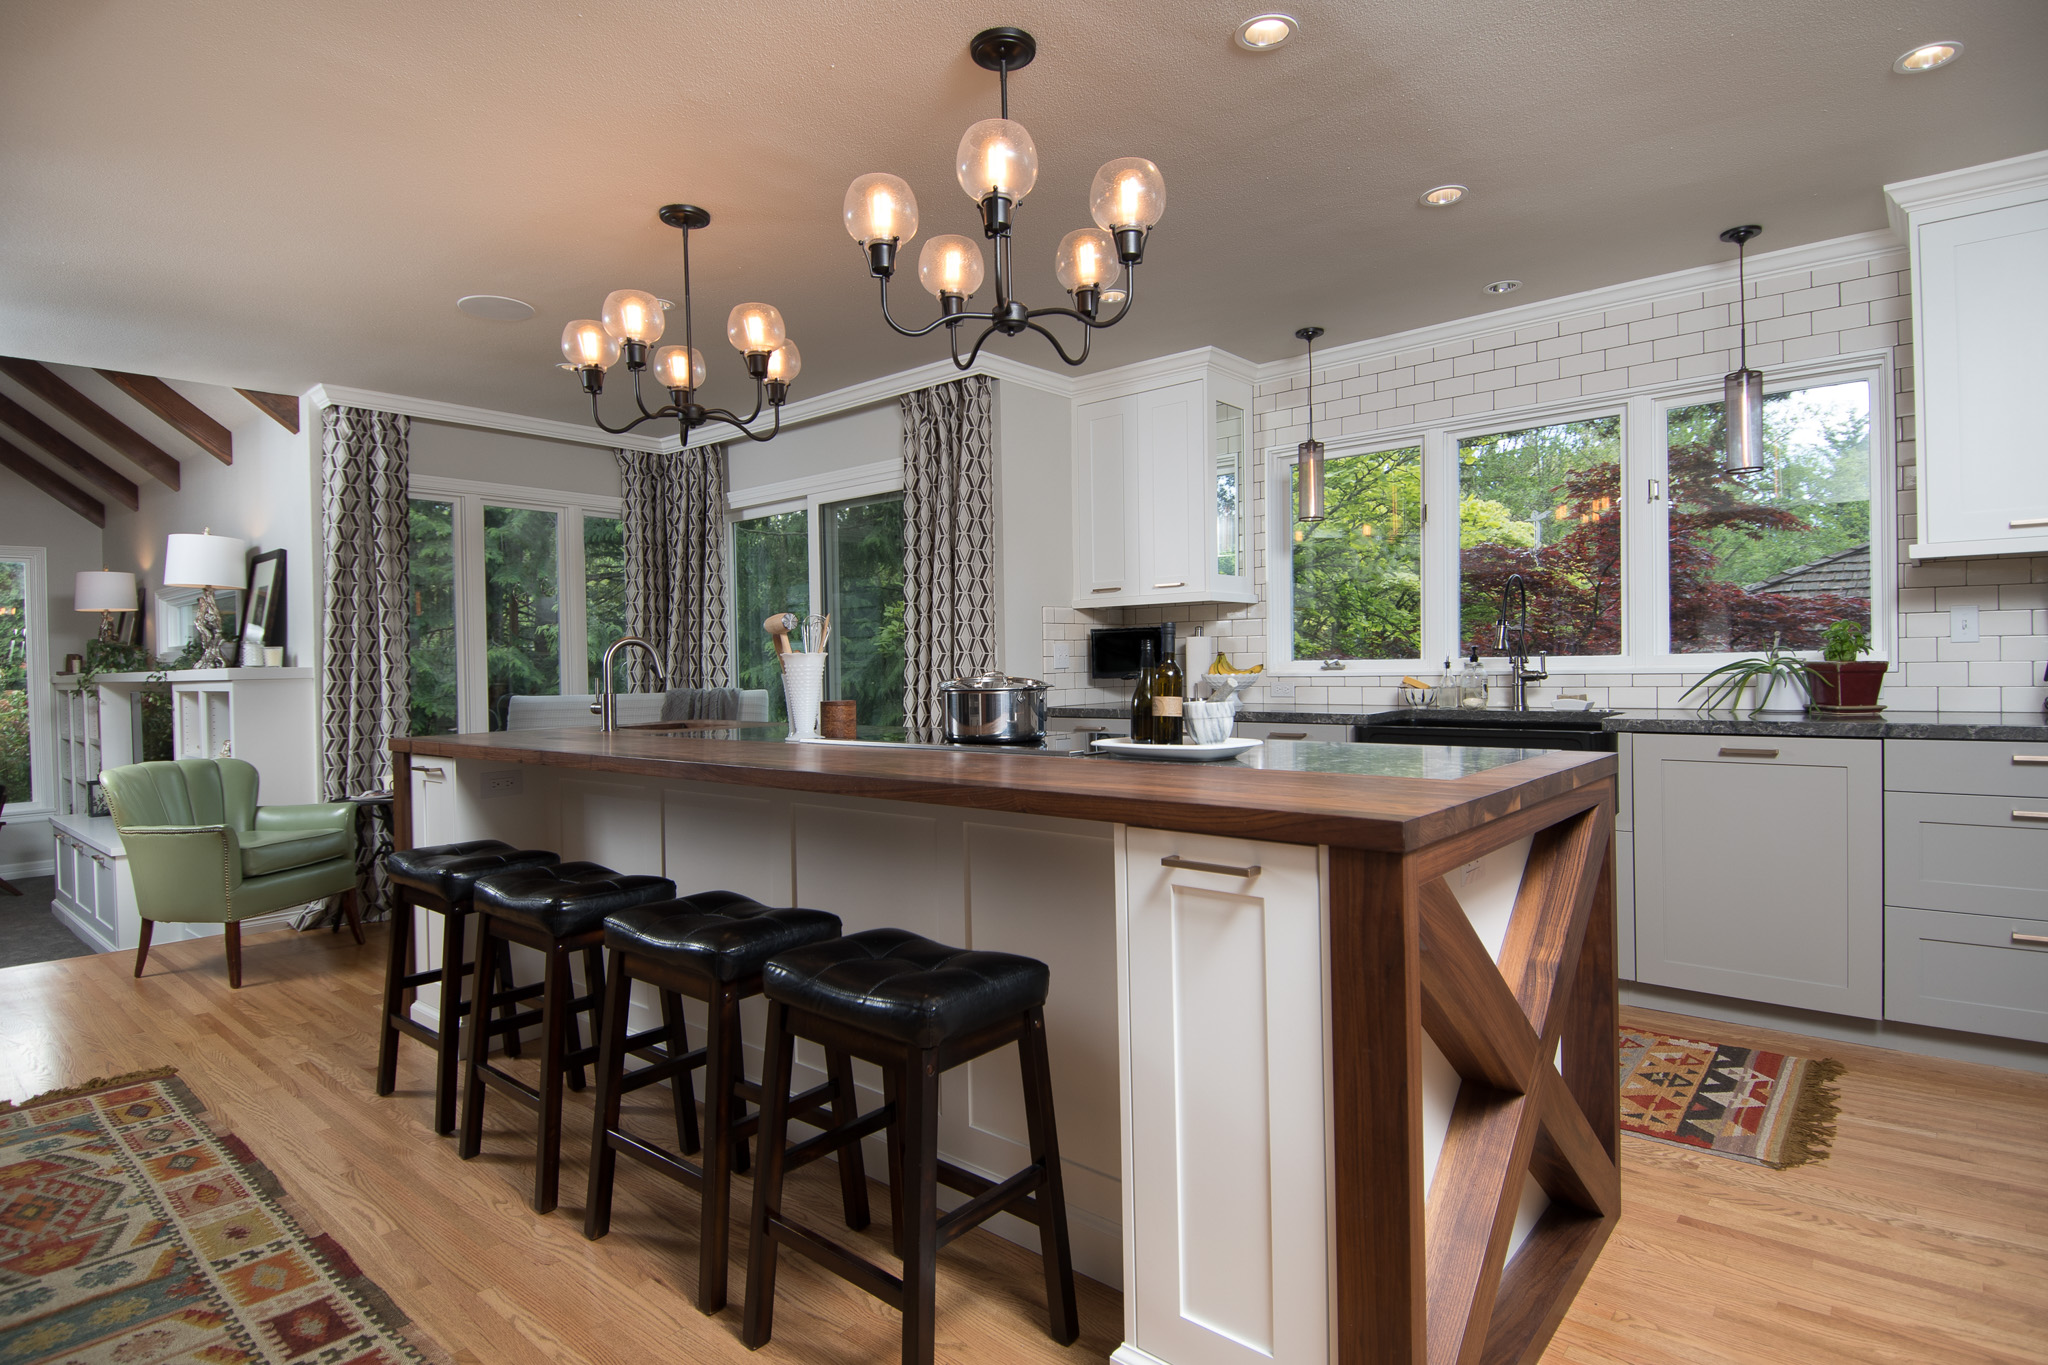 Lord Interior Design - Opening Up The Kitchen-2.jpg